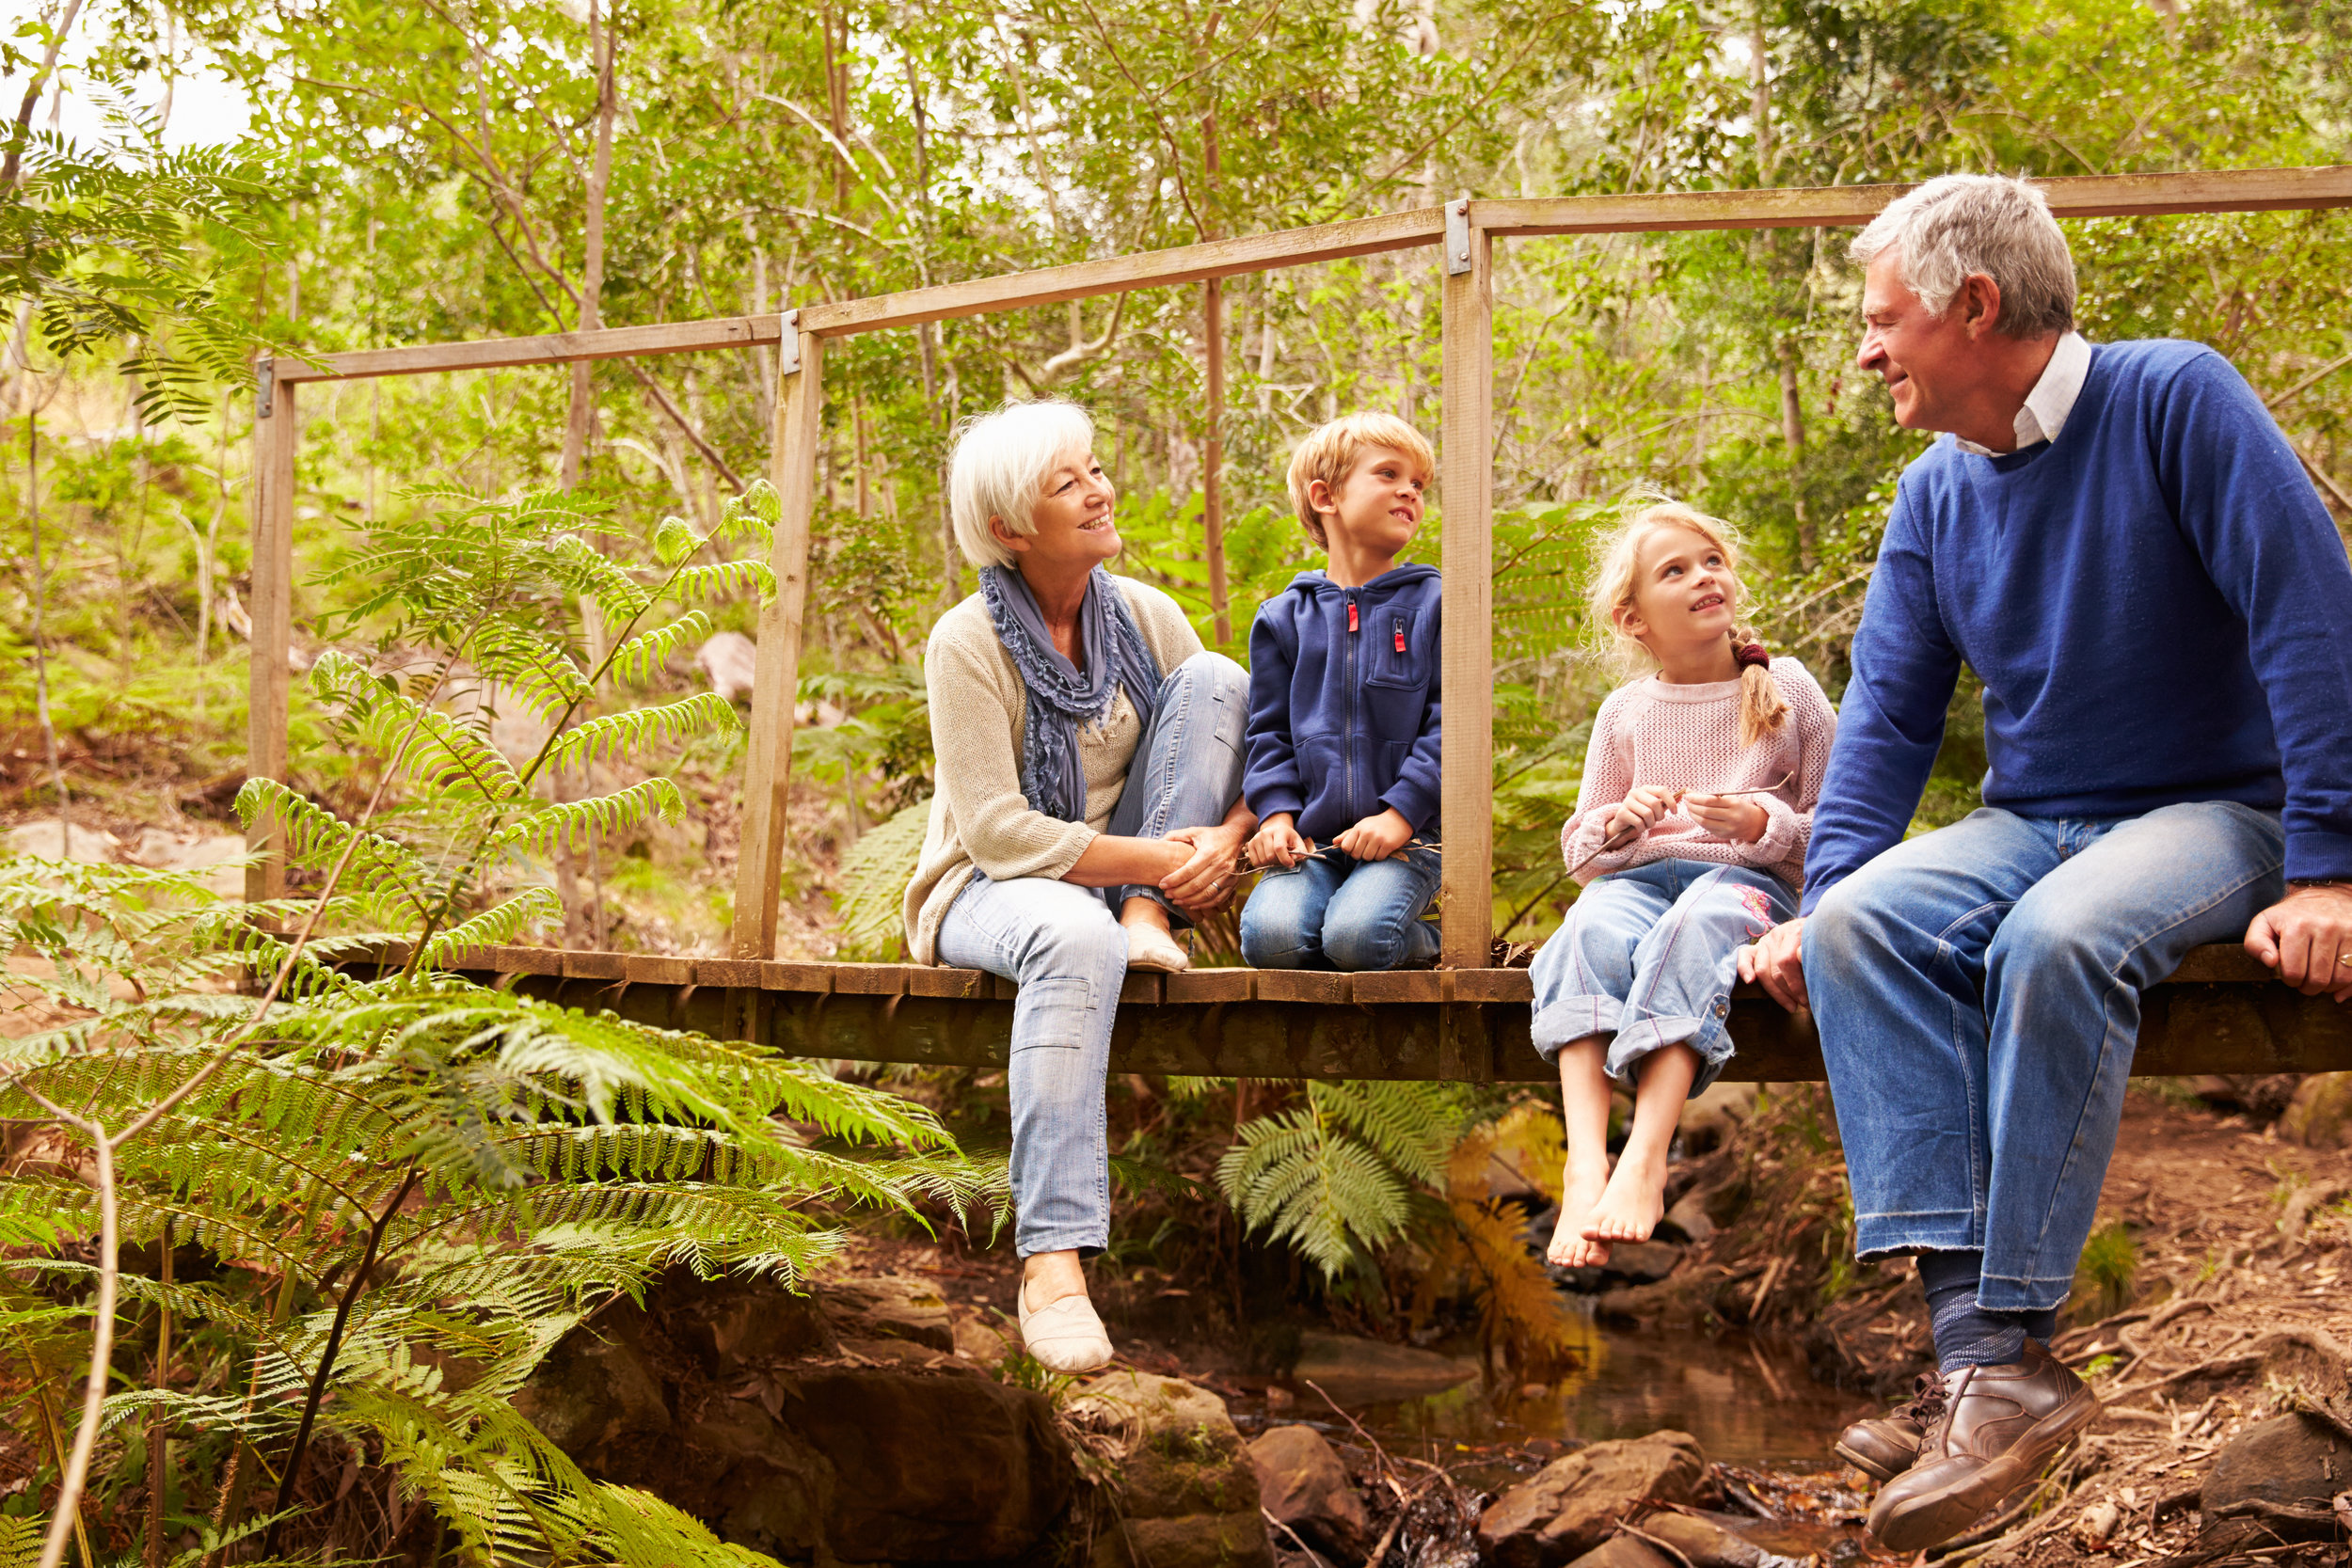 4 Things to Help You with Long Distance as a Grandparent - Even if you are committed to prioritizing your life around your grandchildren's lives, just about every grandparent will have some of their grandchildren living far away from them. If you find yourself in long-distance grandparenthood, consider these 4 suggestions.